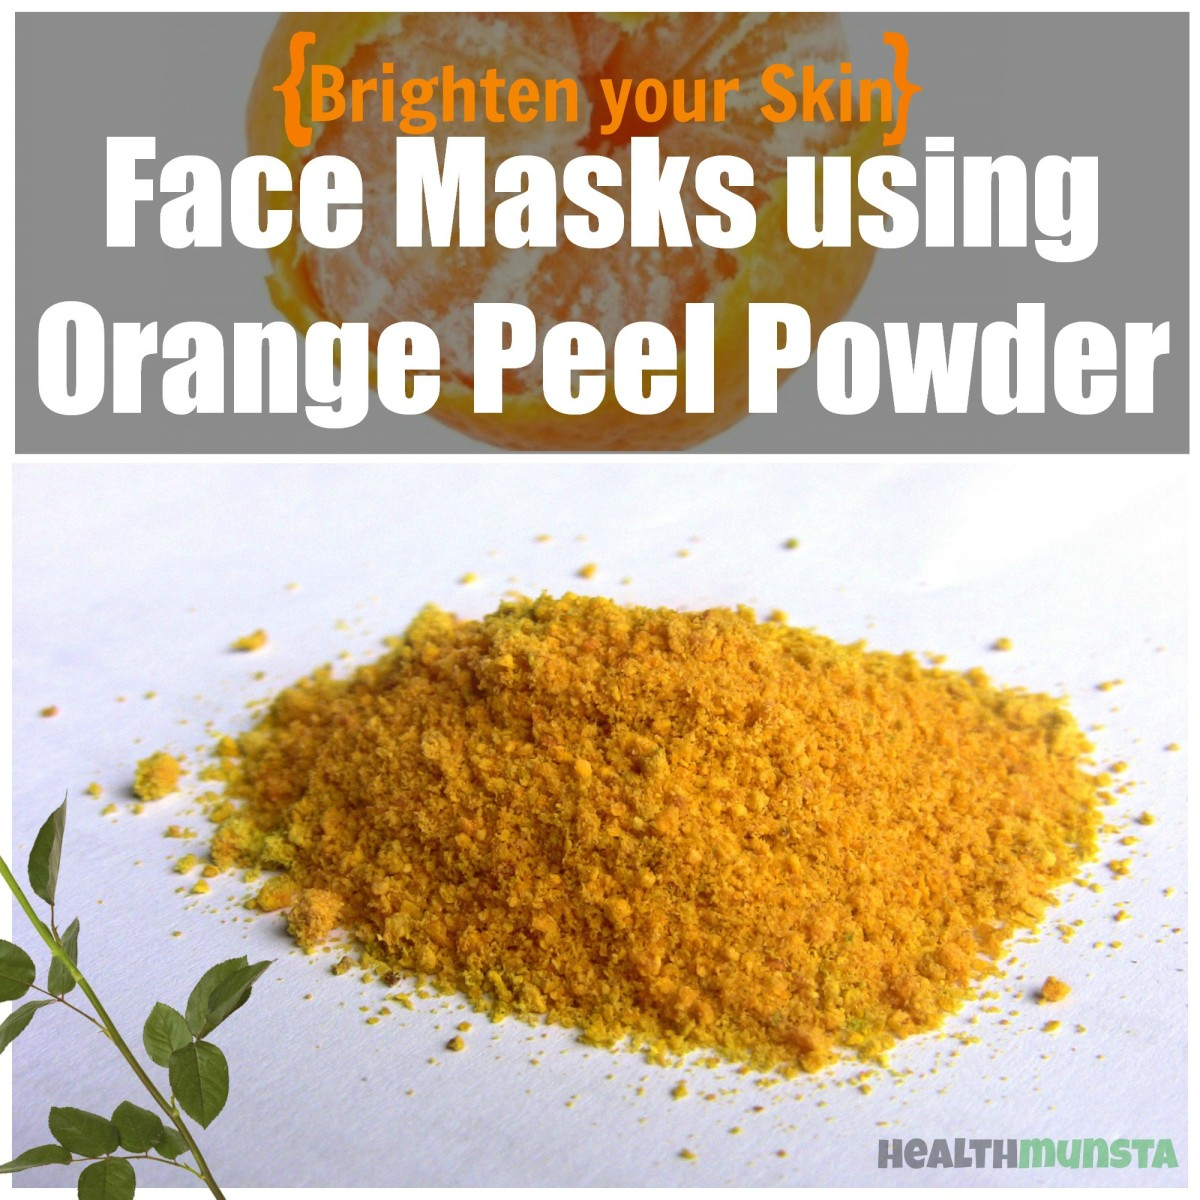 Homemade Orange Peel Face Mask Recipes for Bright Skin